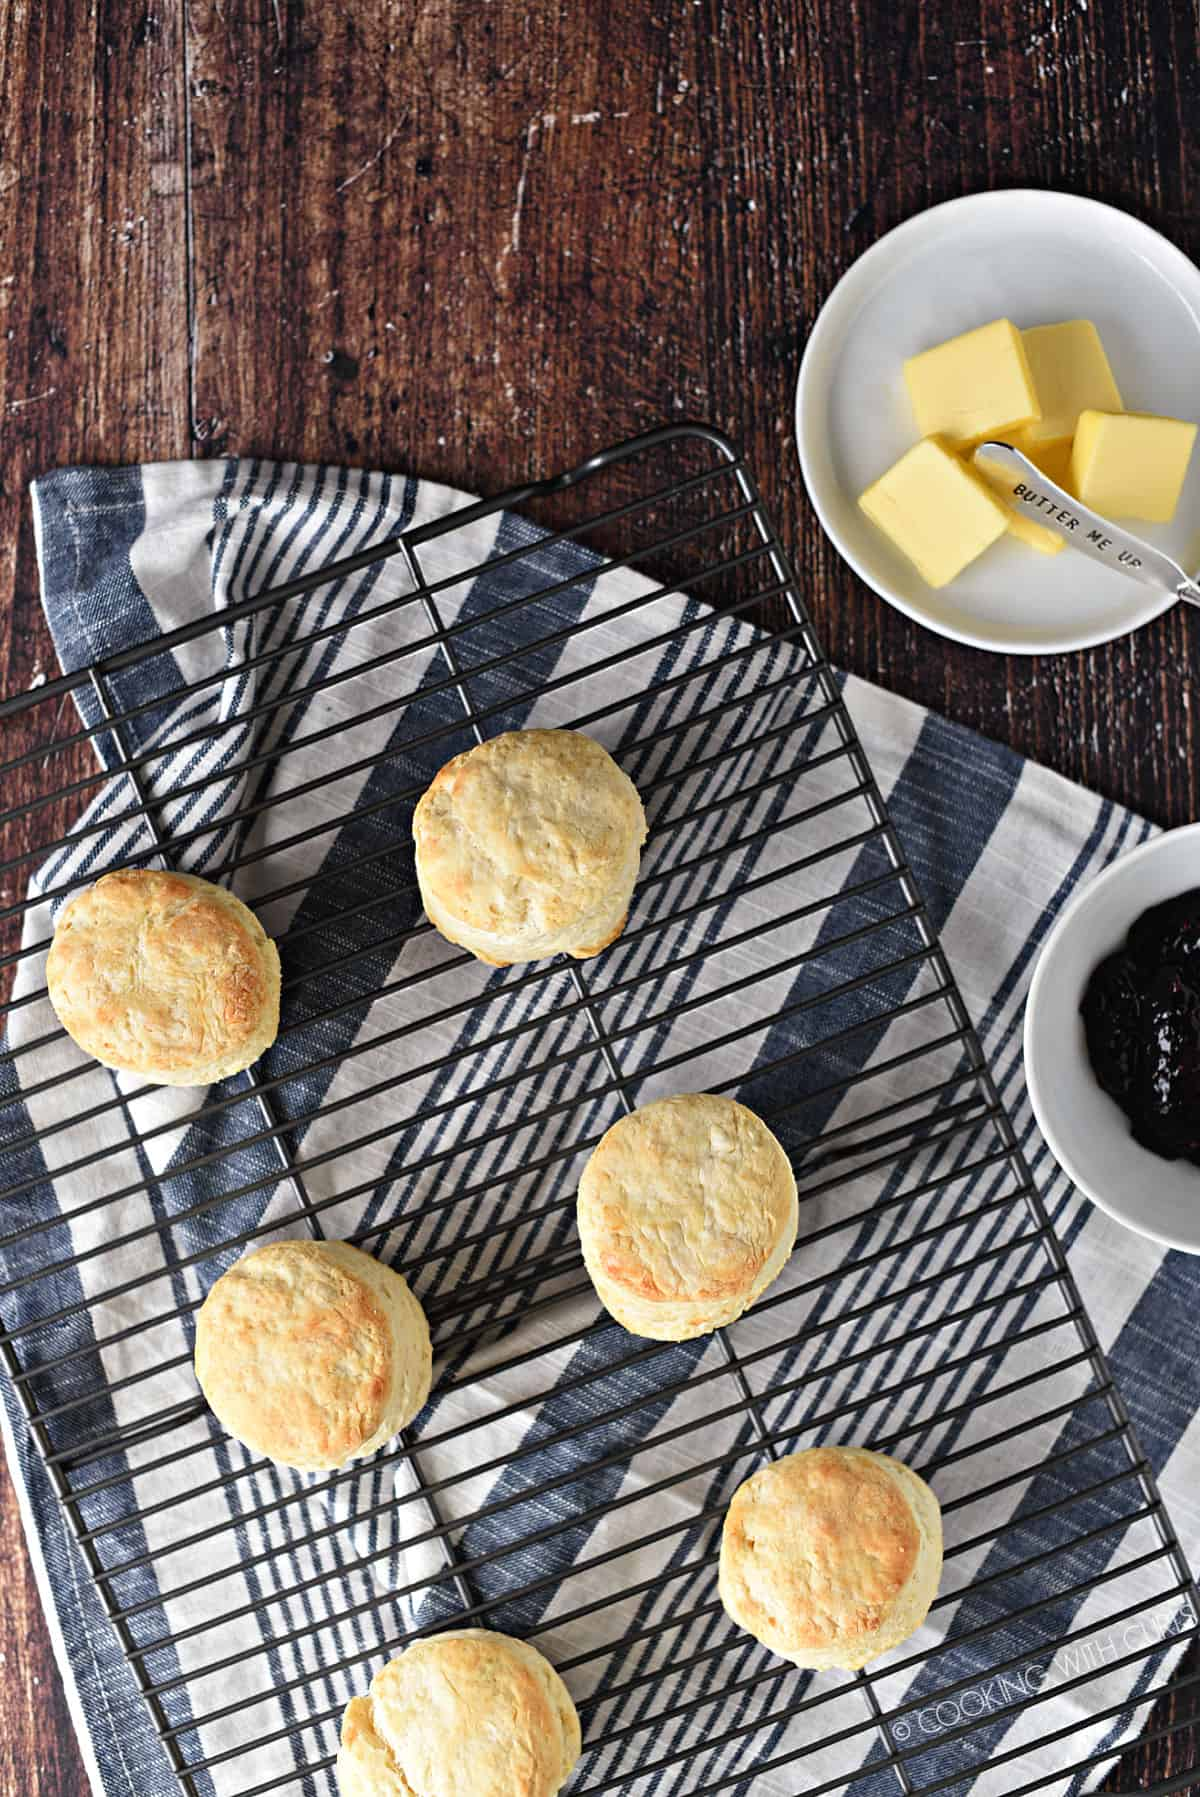 looking down on six biscuits on a black wire cooling rack laying on a blue and white striped towel with a plate of butter slices and a bowl of jam on the right hand side.